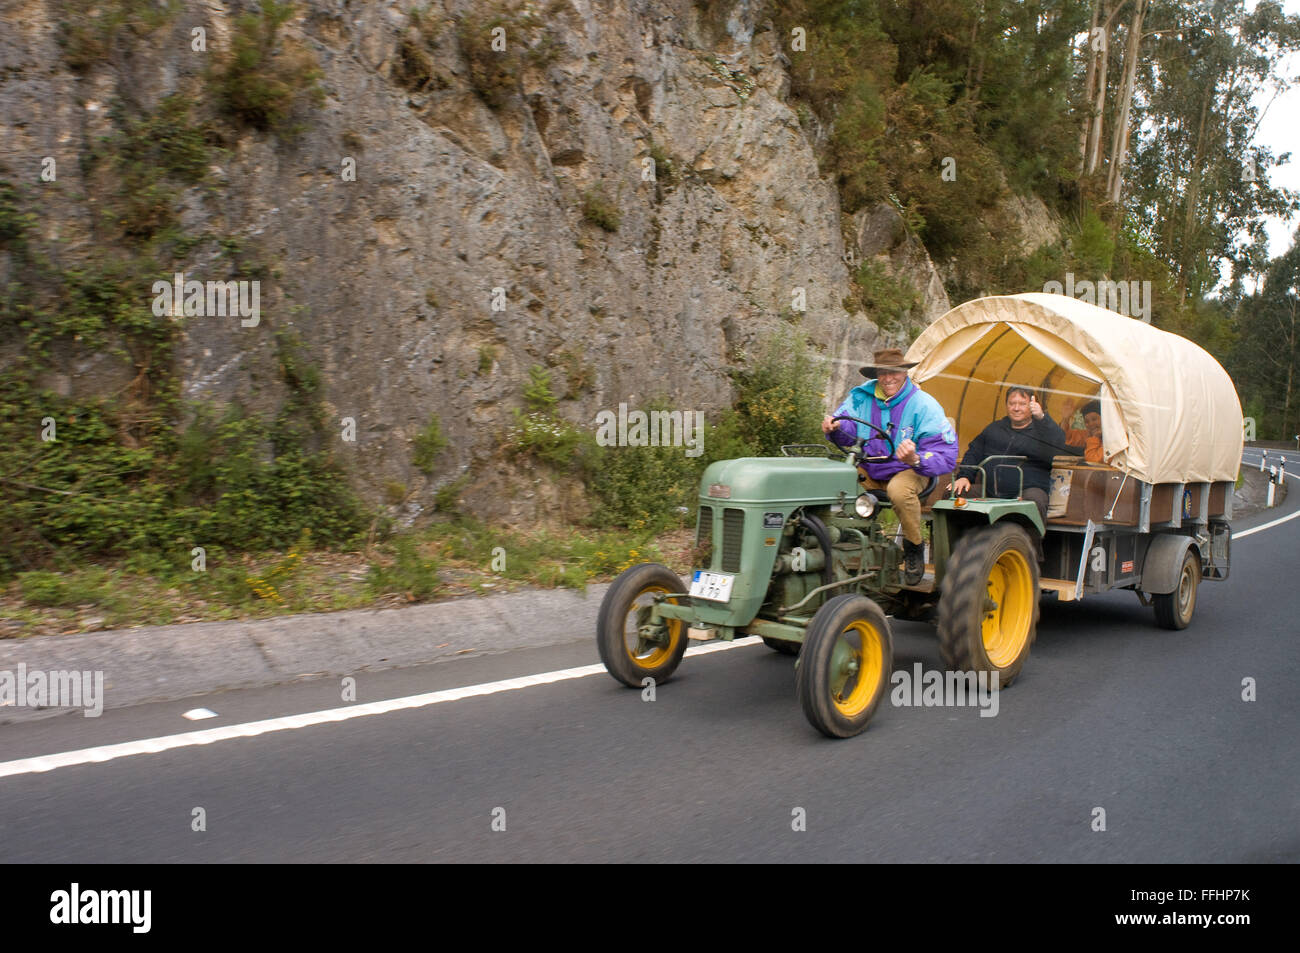 Way of St. James, Jacobean Route. One of the most interesting ways to do the way is to do aboard a vintage tractor. - Stock Image